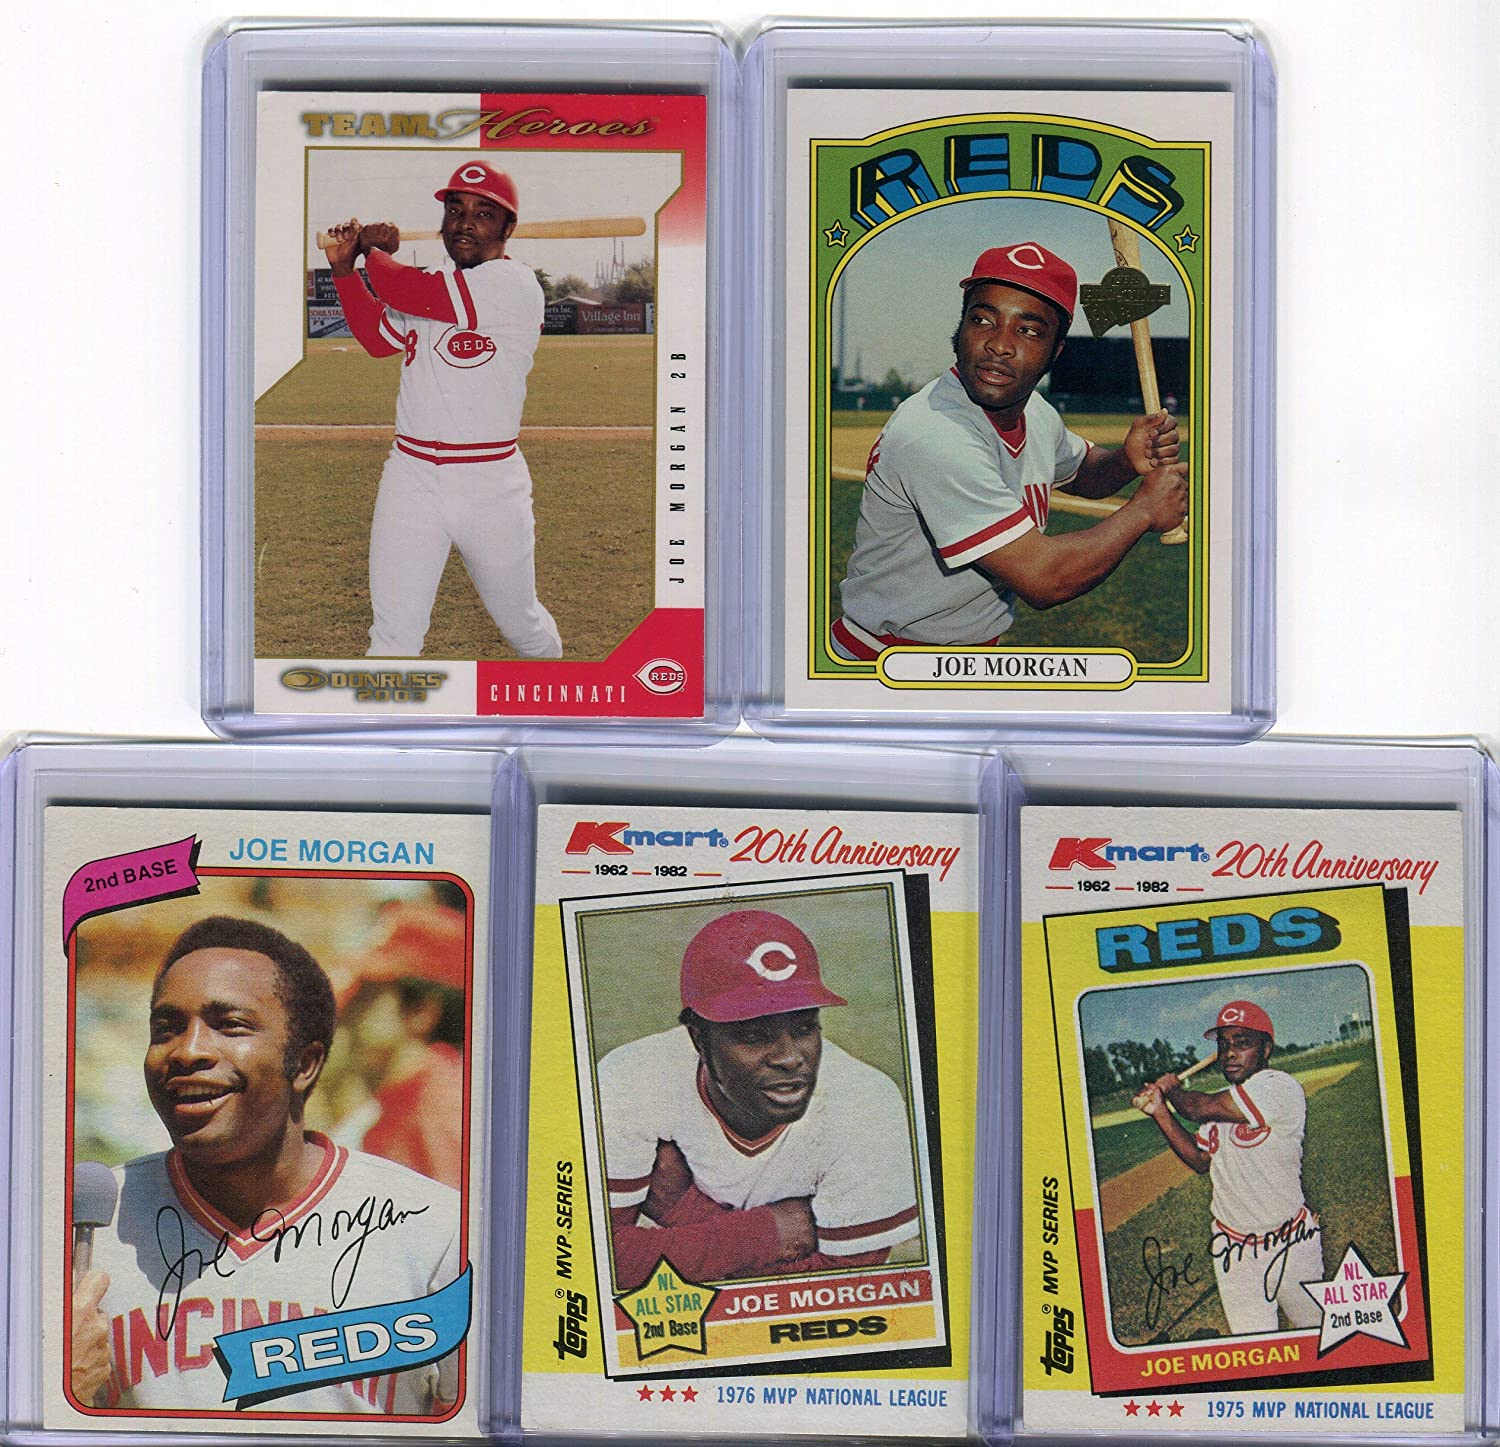 Amazon Com Joe Morgan Cincinnati Reds Assorted Baseball Cards 5 Card Lot Sports Collectibles His birthday, what he did before fame, his family life, fun trivia facts he married theresa morgan in 1990 and he had four daughters, angela, ashley, lisa and kelly. joe morgan cincinnati reds assorted baseball cards 5 card lot